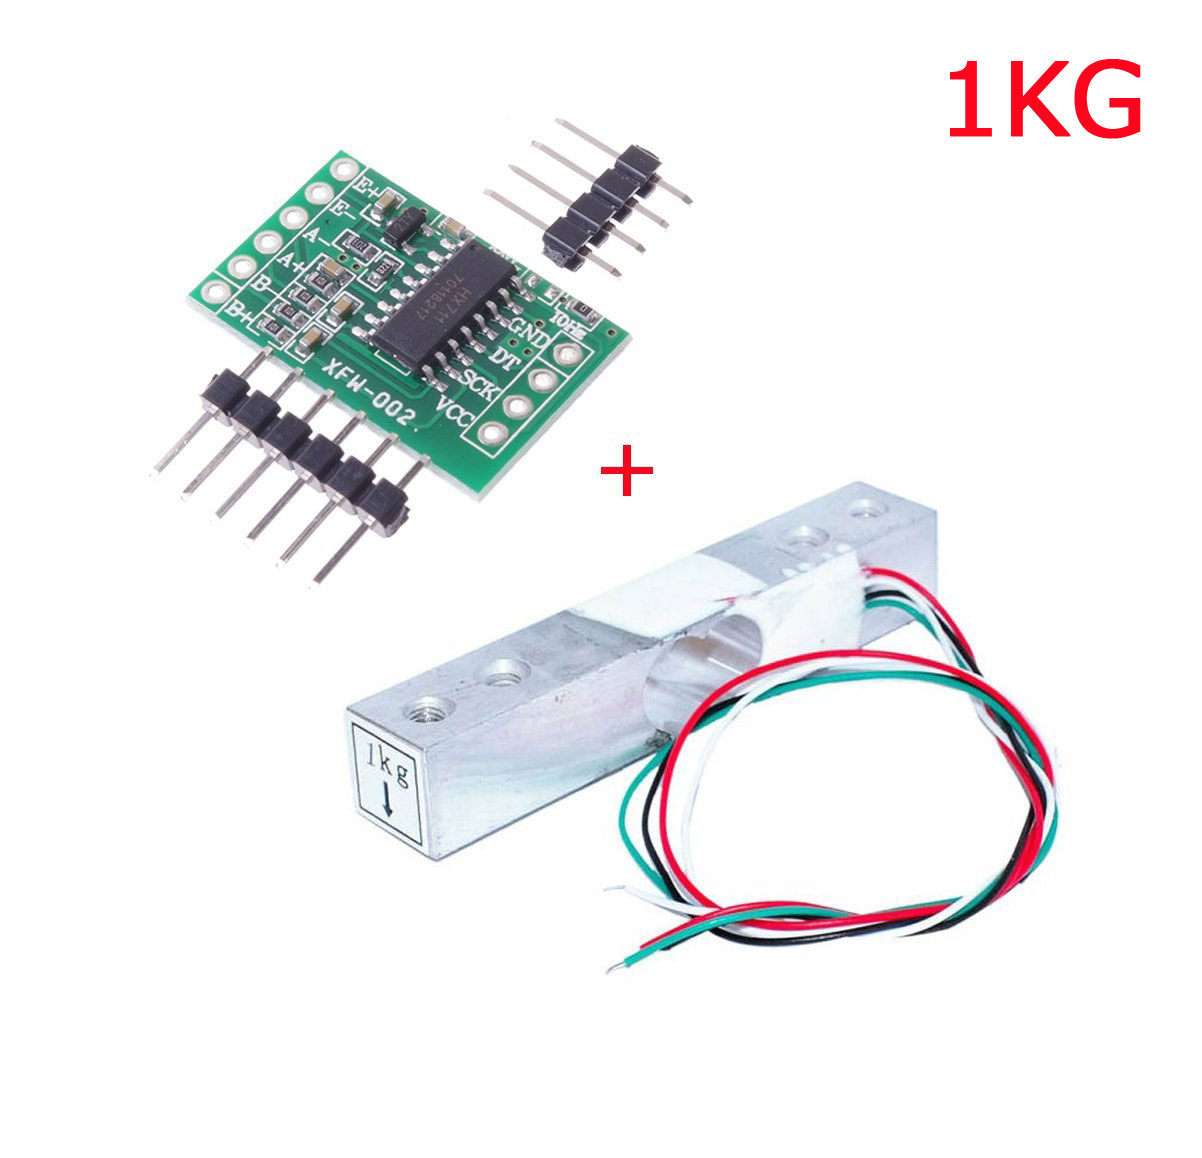 digital-load-cell-weight-sensor-1kg-portable-electronic-kitchen-scale-hx711-weighing-sensors-ad-module-for-font-b-arduino-b-font